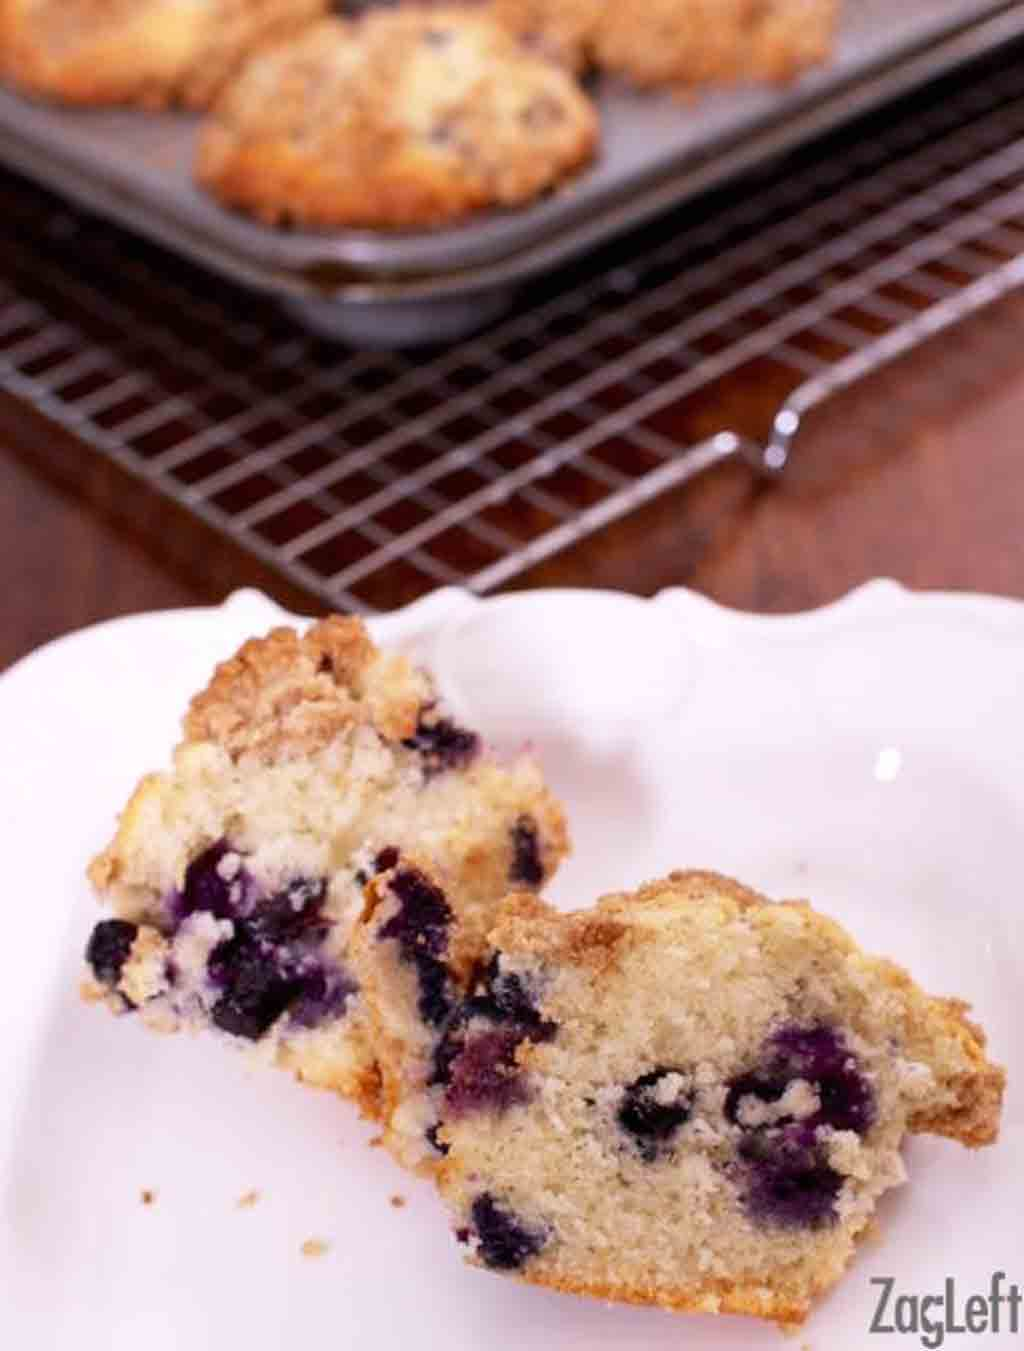 A Blueberry Muffin in half on a plate with a muffin tray on a cooling rack in the background